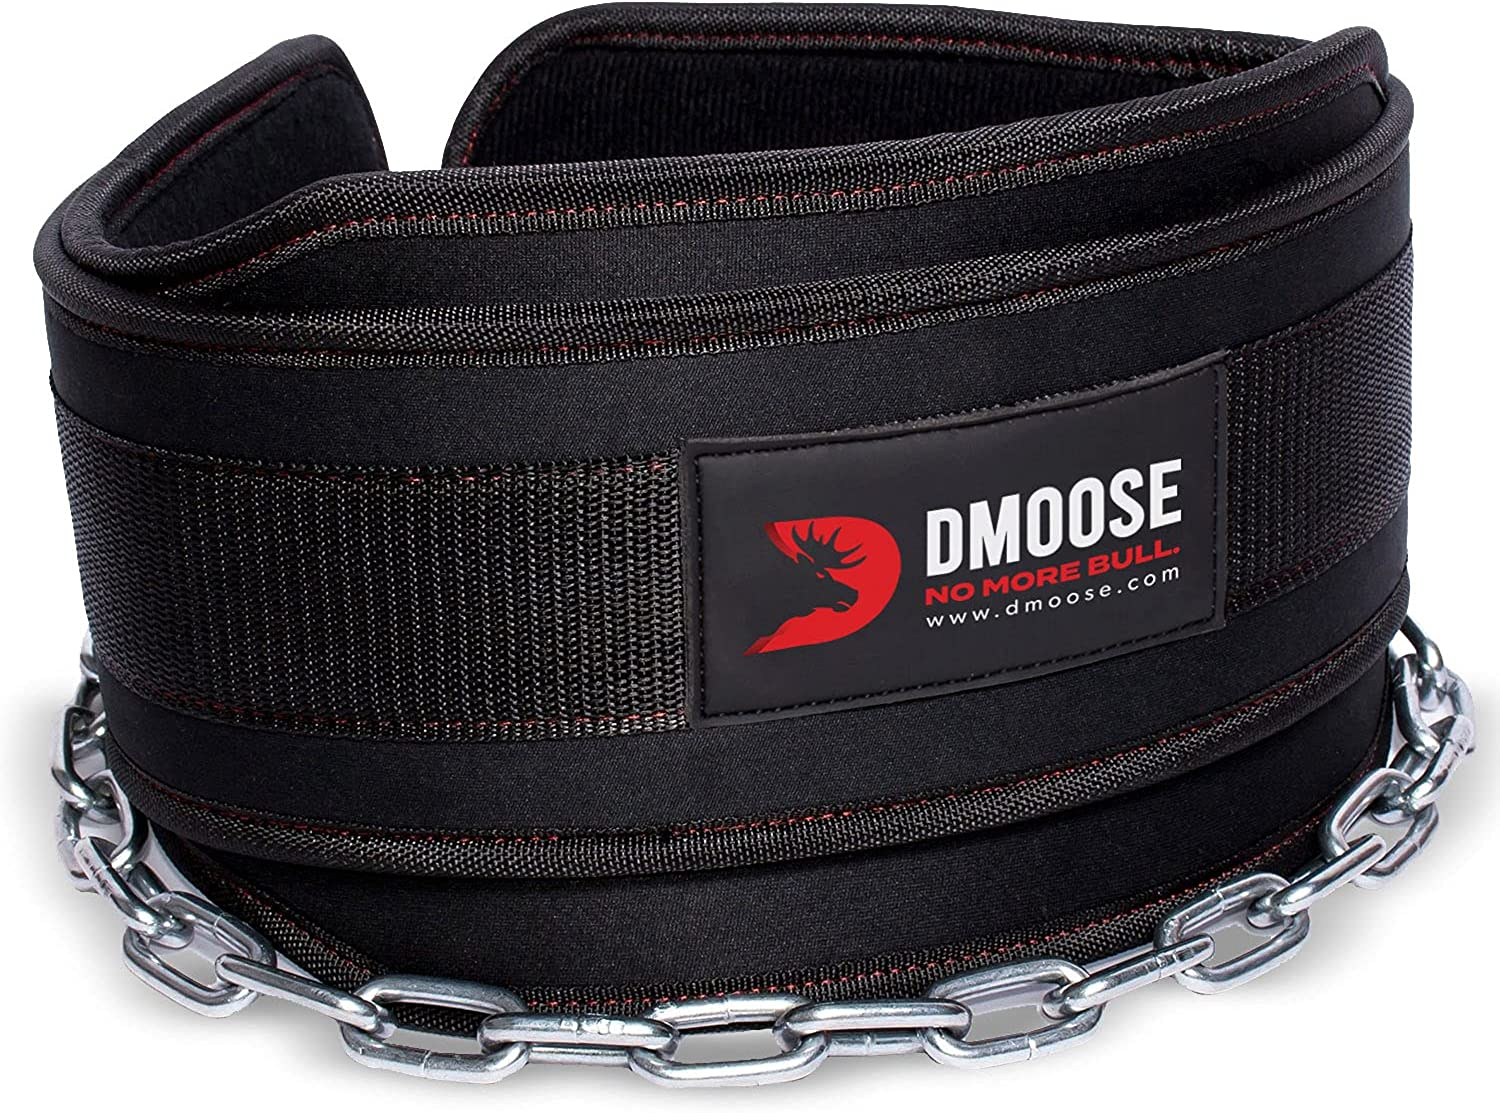 DMoose Fitness Dip Belt with Chain for Weightlifting, Pullups, Powerlifting, and Bodybuilding Workouts, Long Heavy Duty Steel, Comfortable Neoprene Waist Support (Black) : Sports & Outdoors